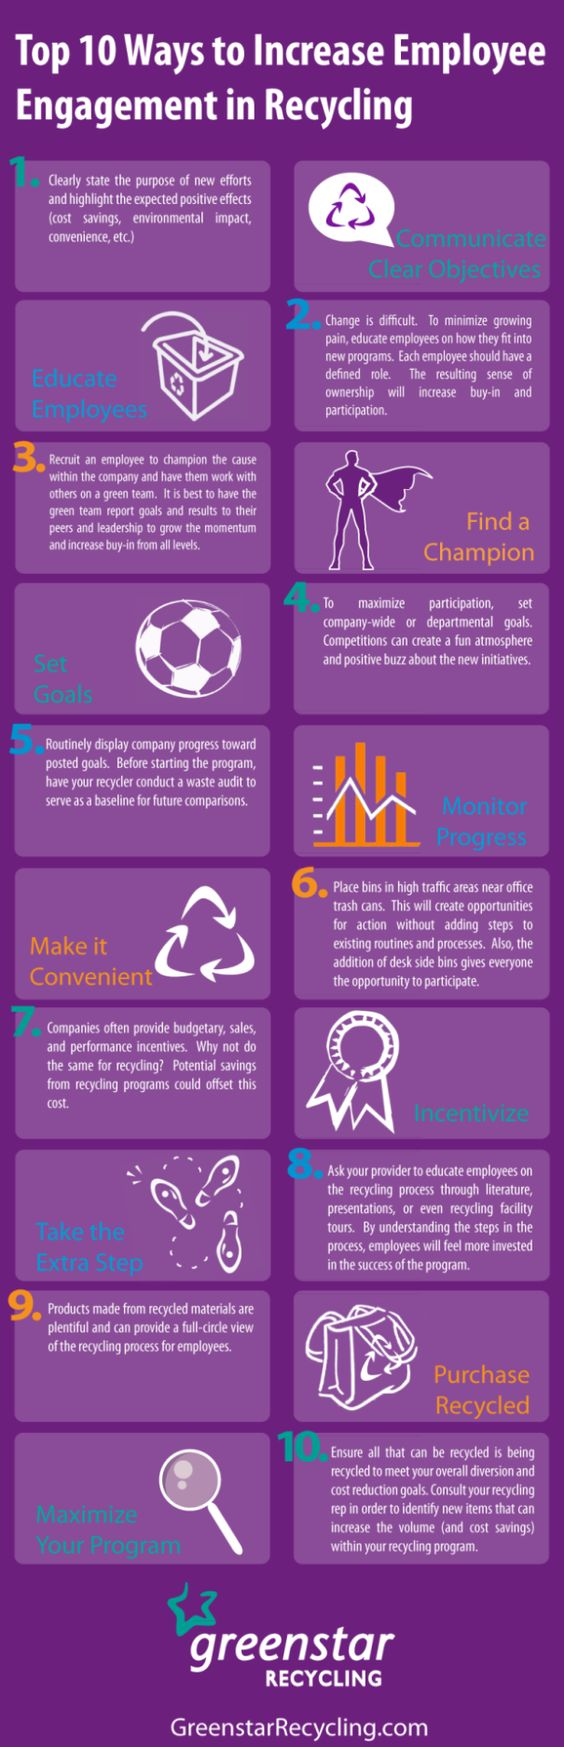 employee recycling engagement infographic